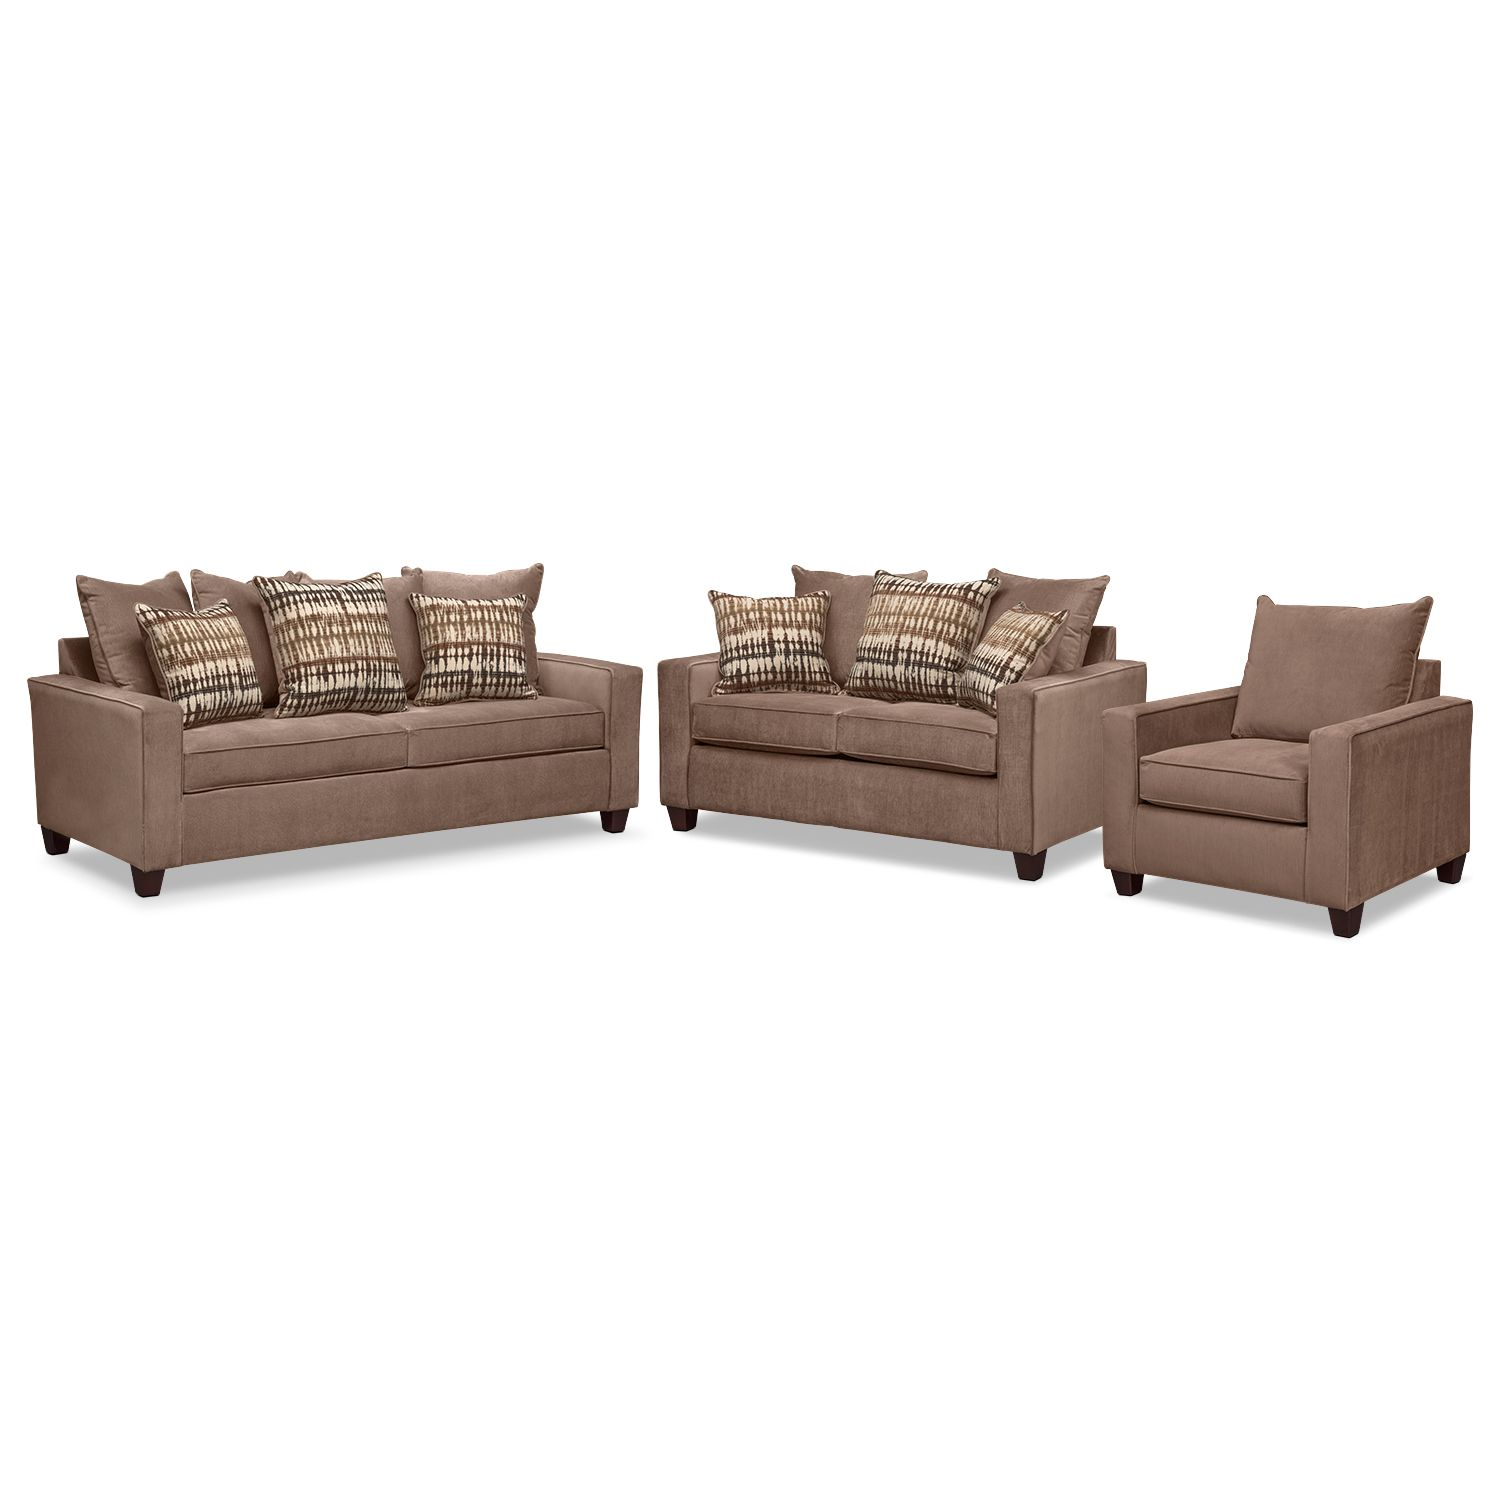 Living Room Furniture Ethan Cumulus 2 Piece Sectional with Right